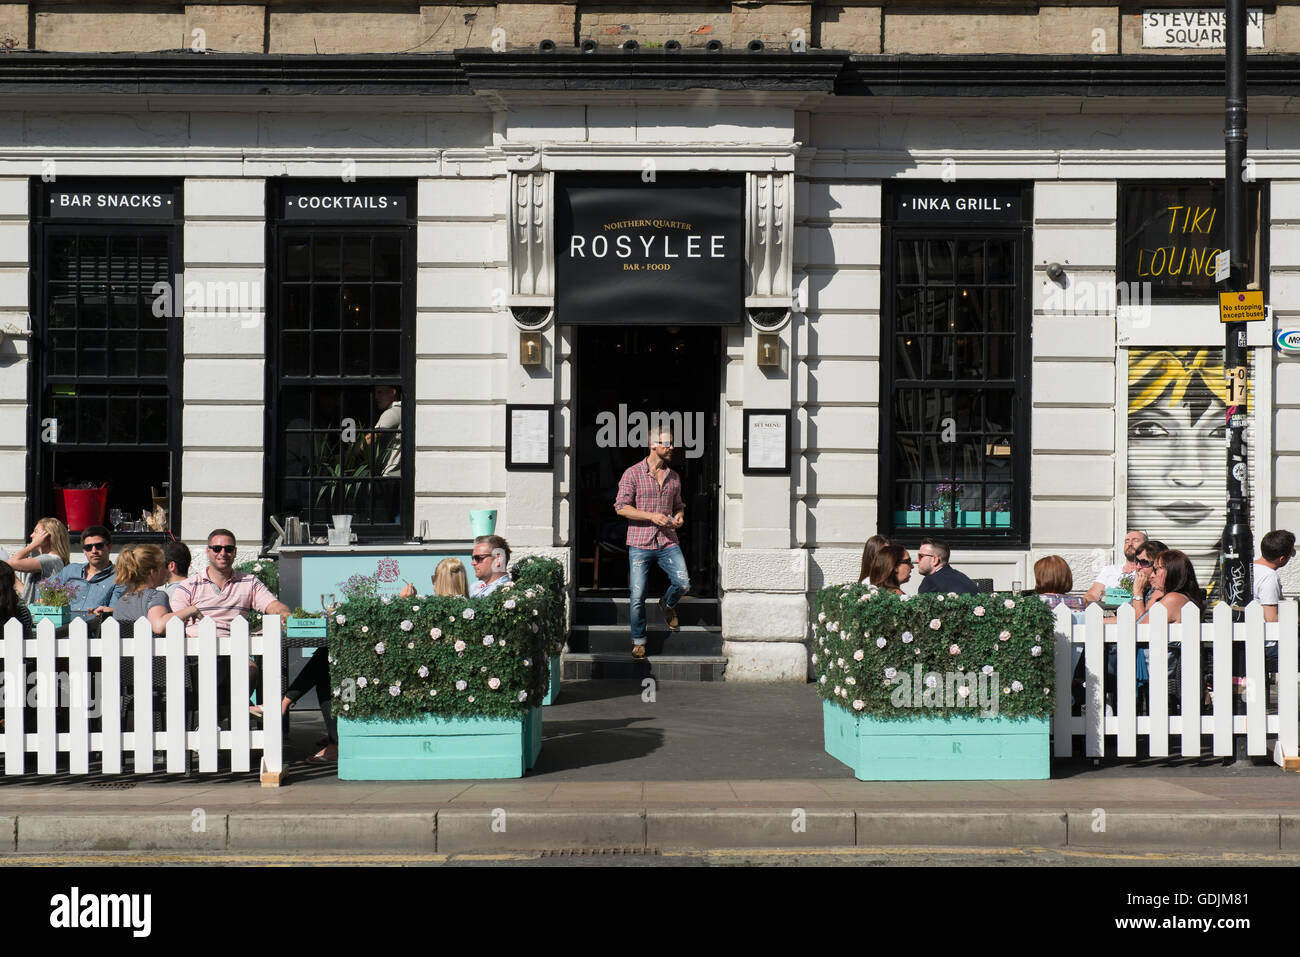 People Sit Outside Enjoying The Beer Garden Of Rosylee Bar And Stock Photo:  111663777   Alamy